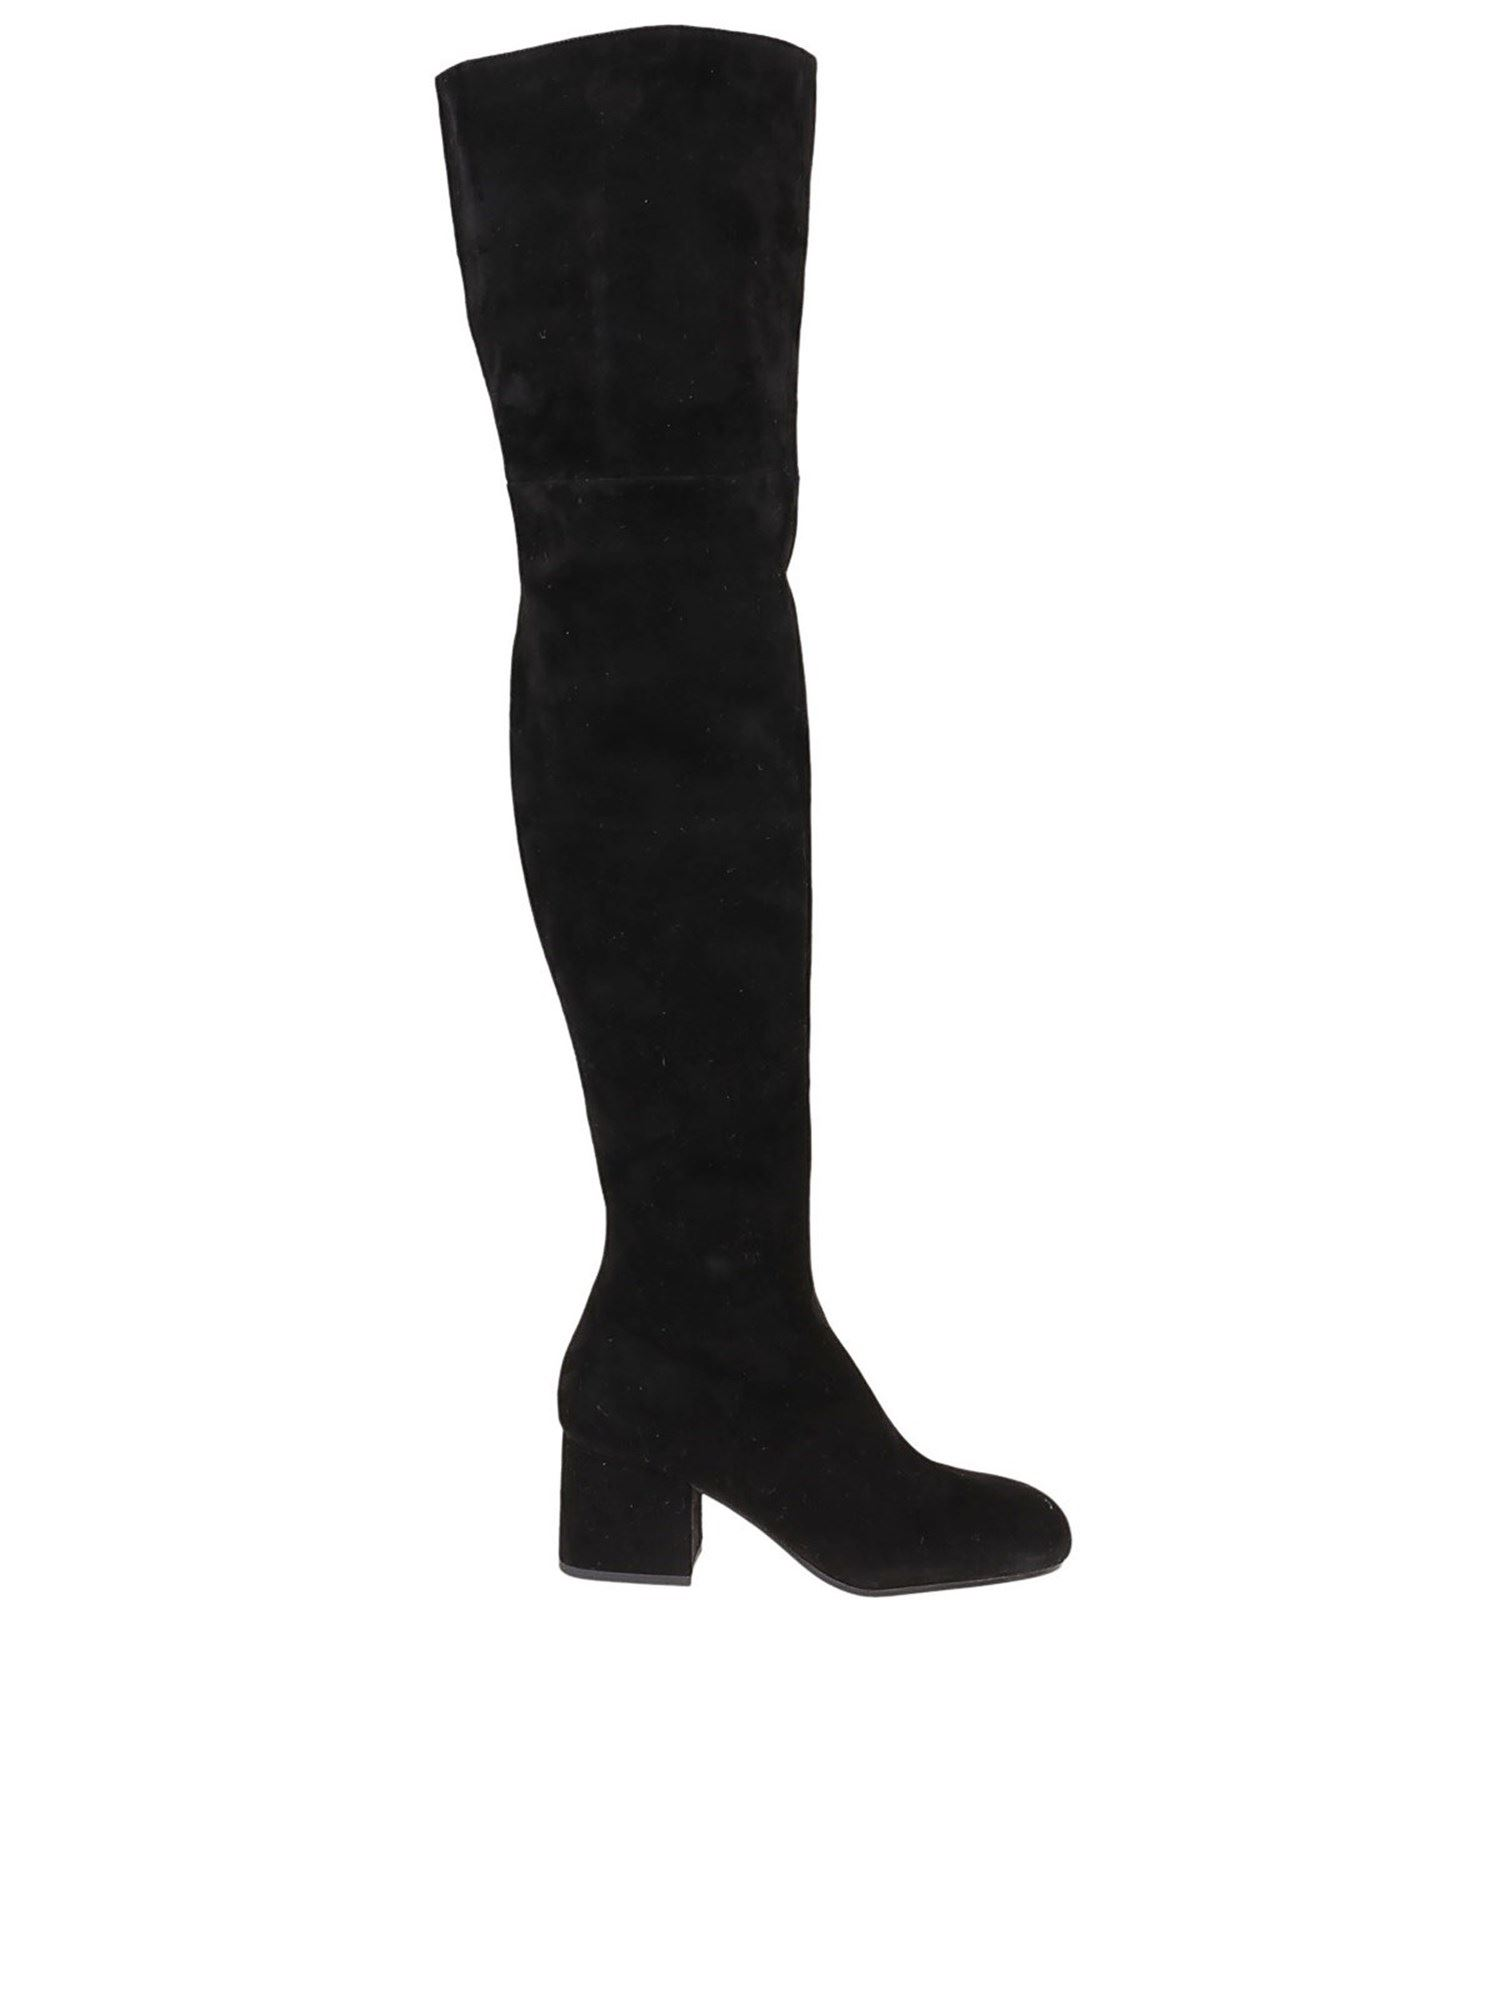 MARNI SUEDE BOOTS IN BLACK